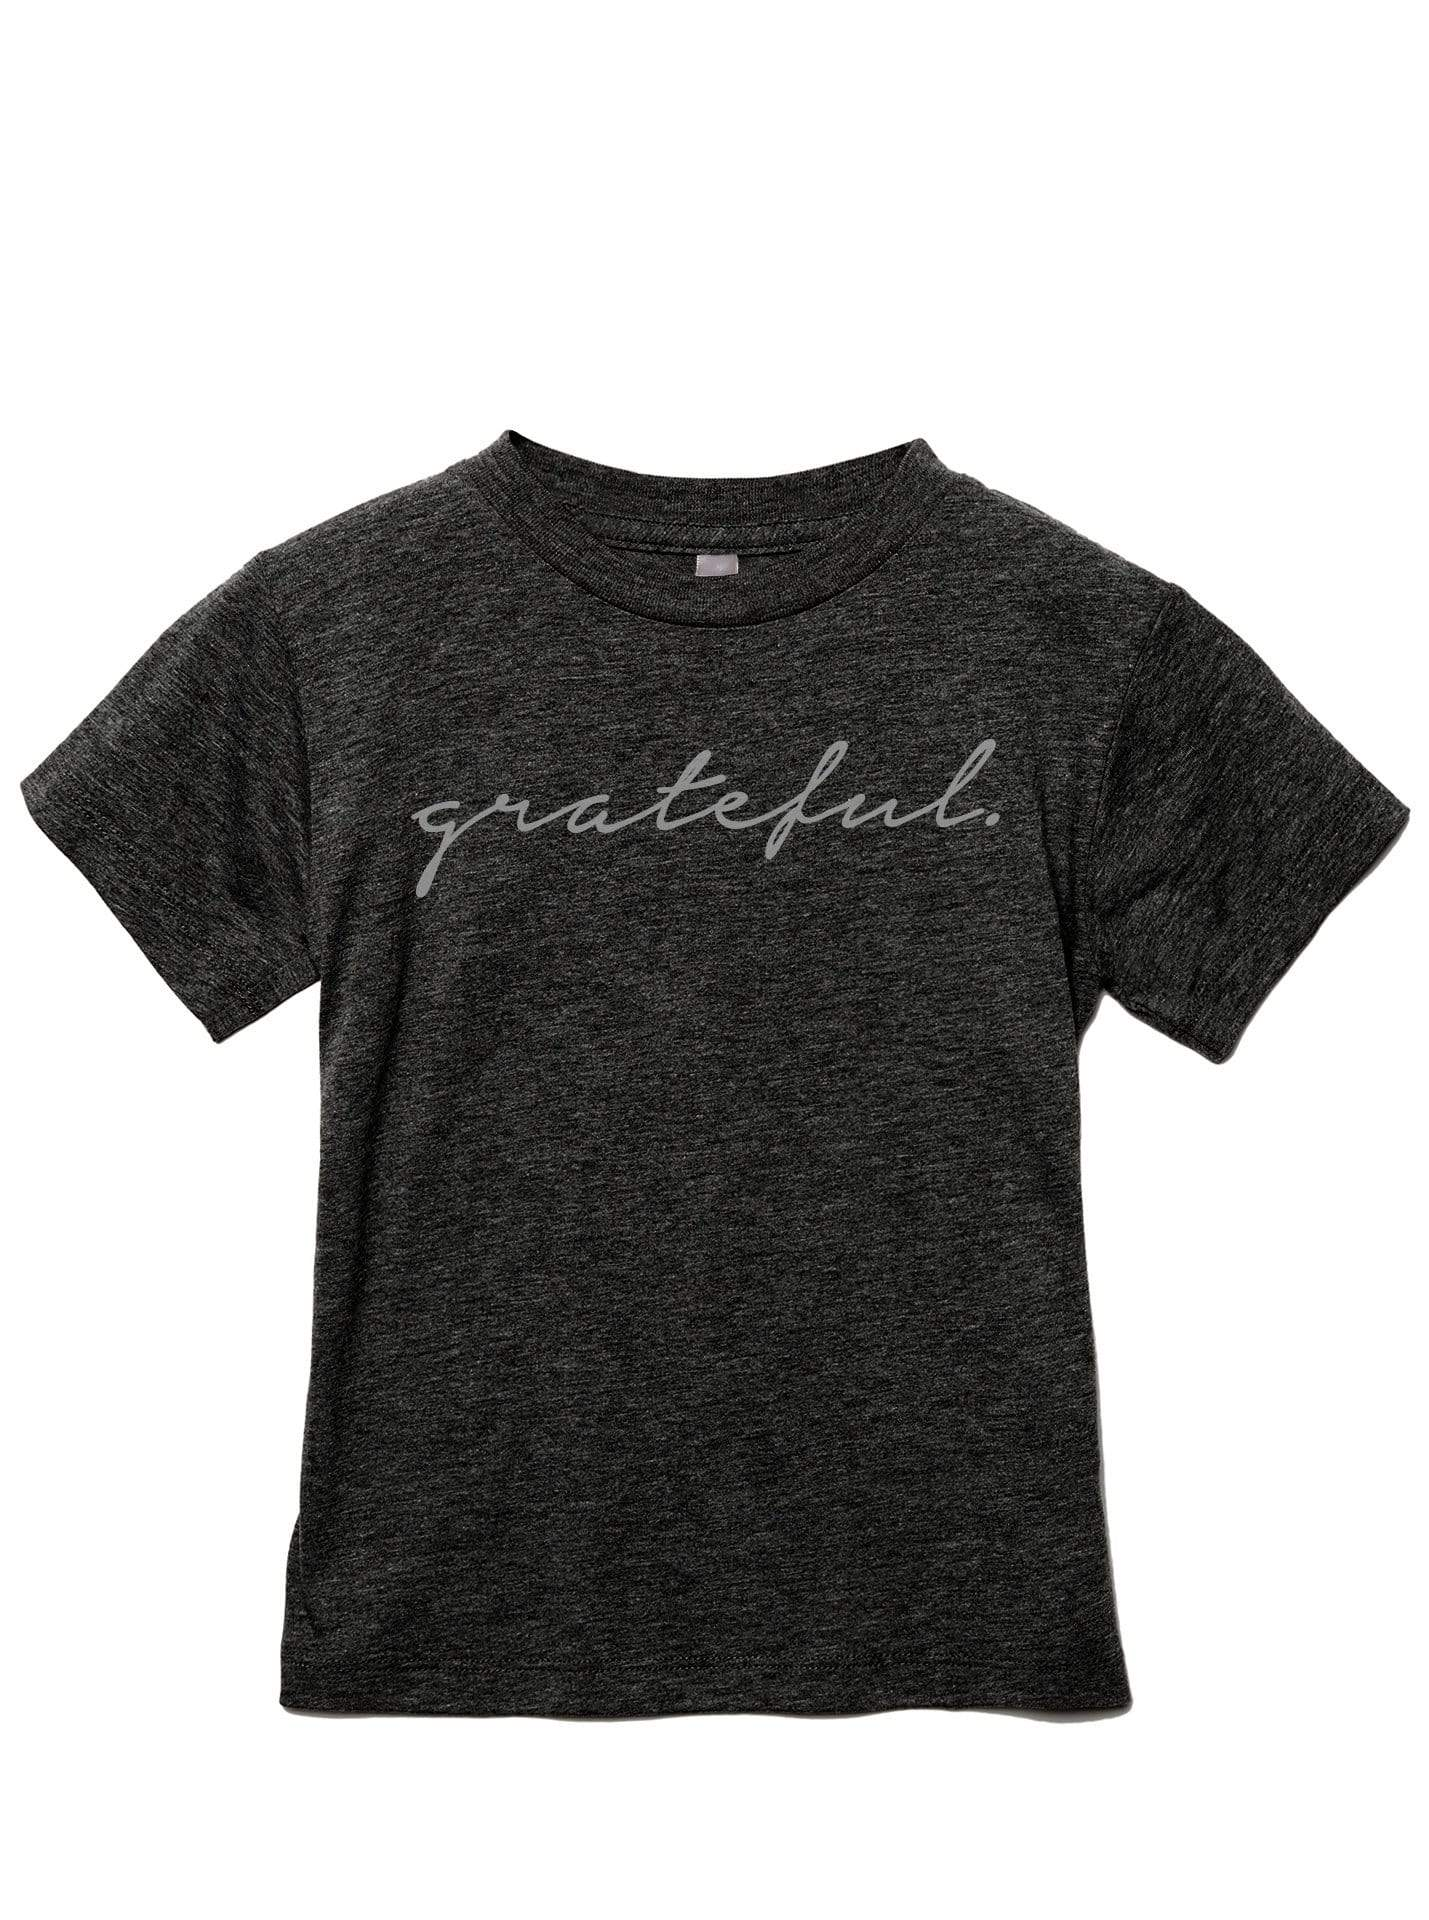 Grateful Kid Toddler's Go-To Crewneck Tee Charcoal